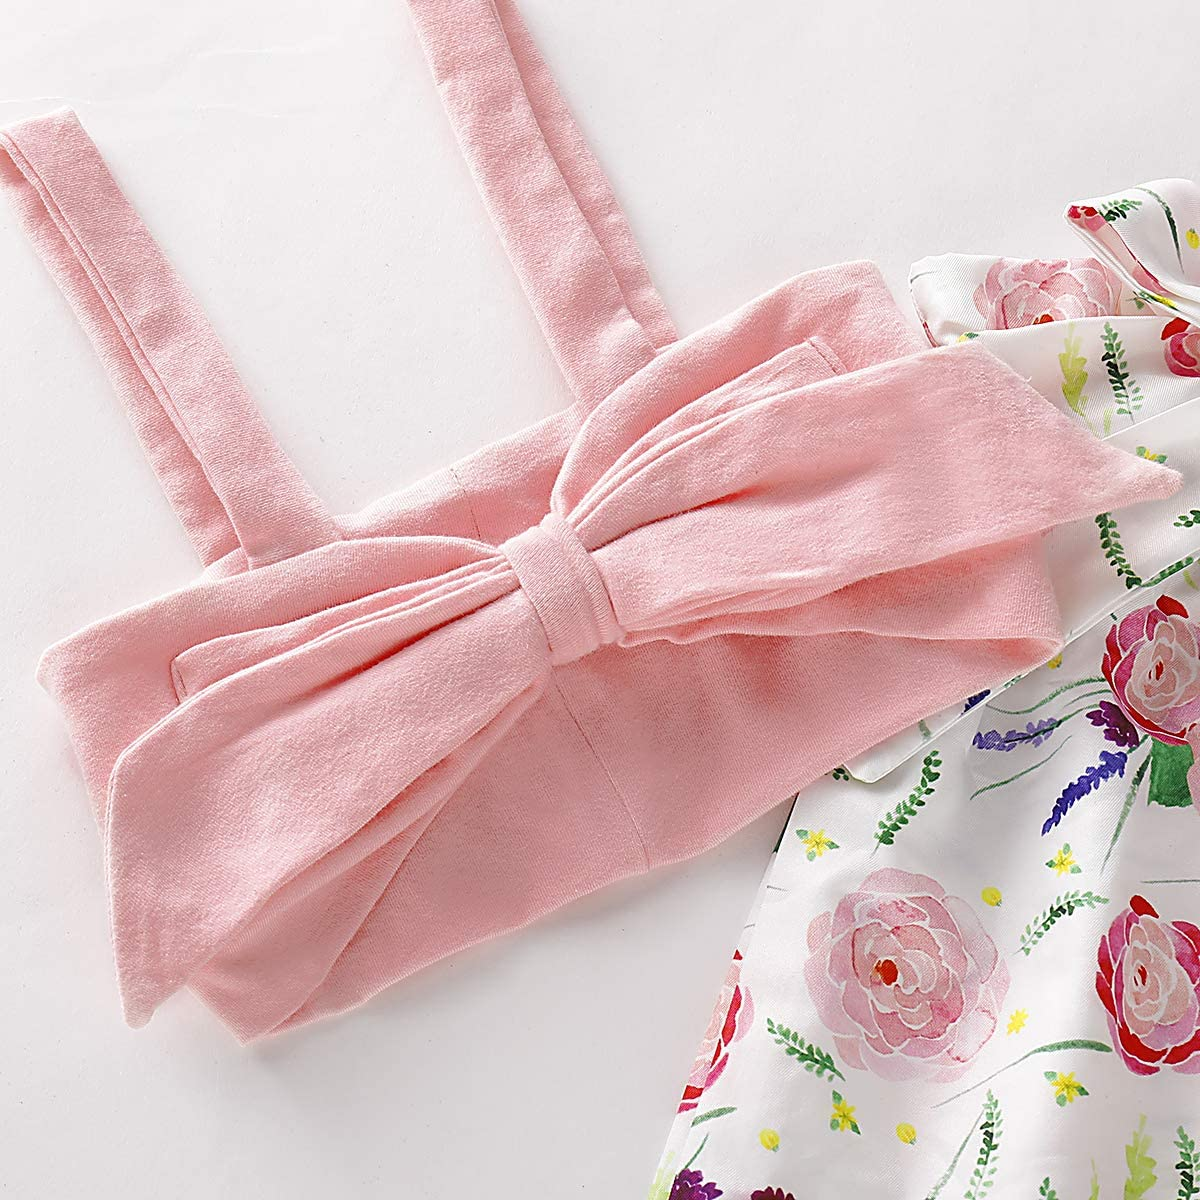 Kaipiclos Toddler Baby Girls Clothes Set Kids One Bowknot Vest Crop Tops Floral Palazzo Pants Outfits